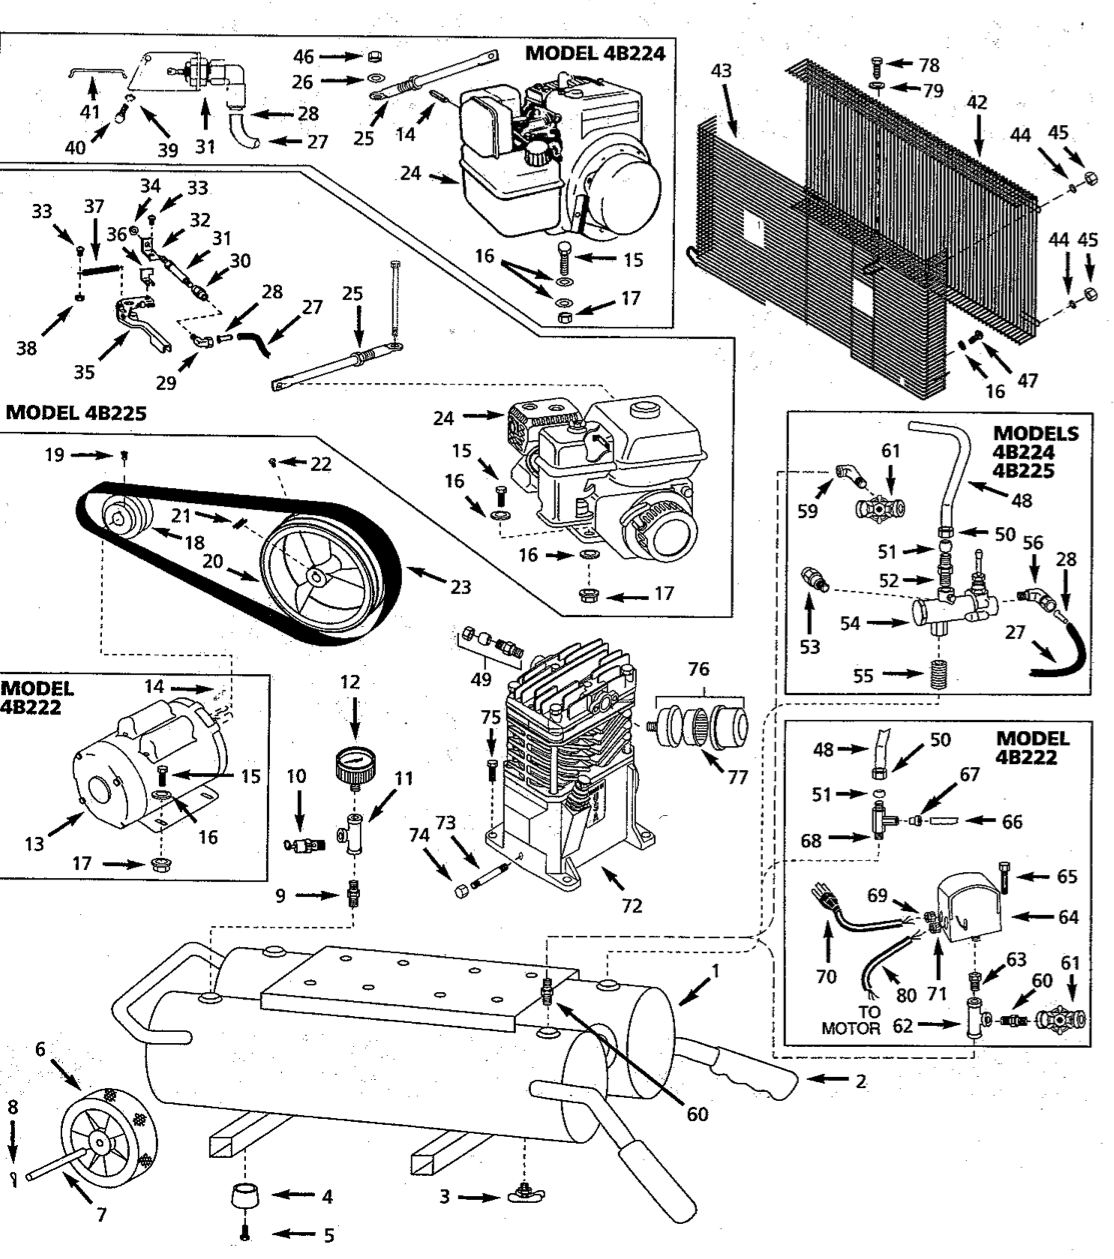 4B225 - Portable Gas Air Compressor Parts schematic